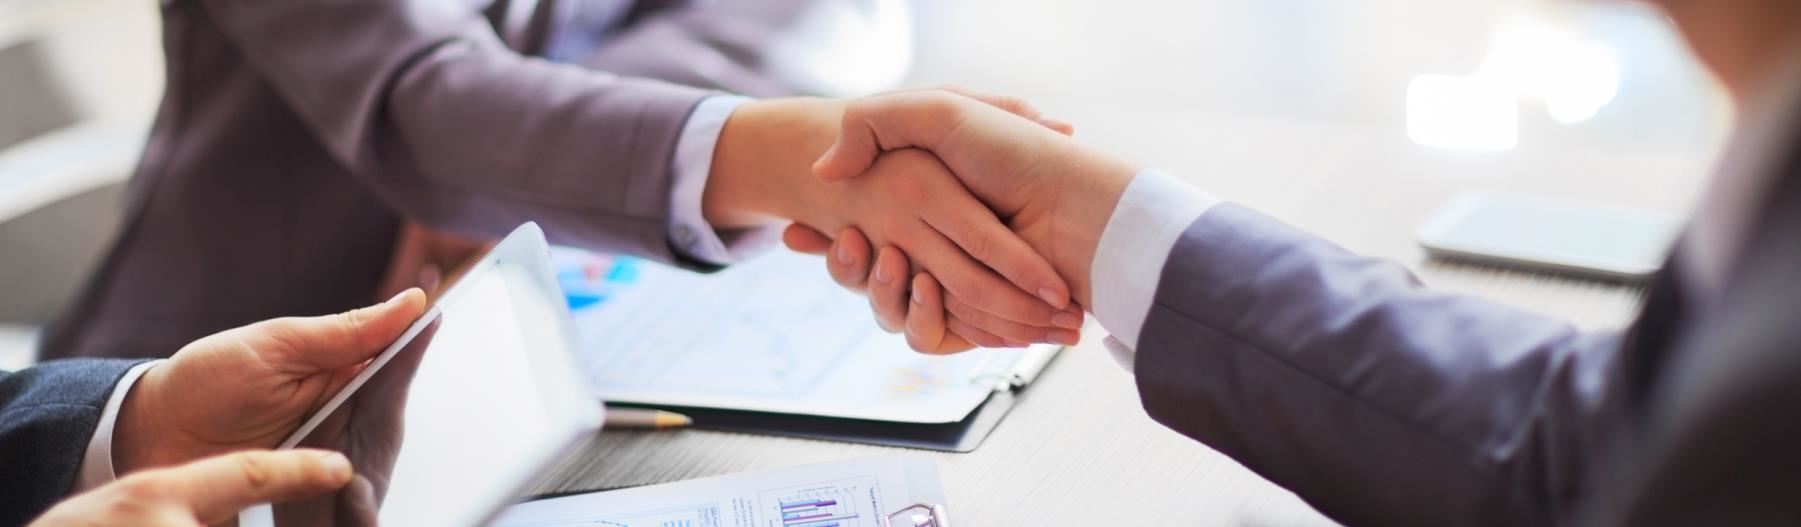 Image of two business people shaking hands.